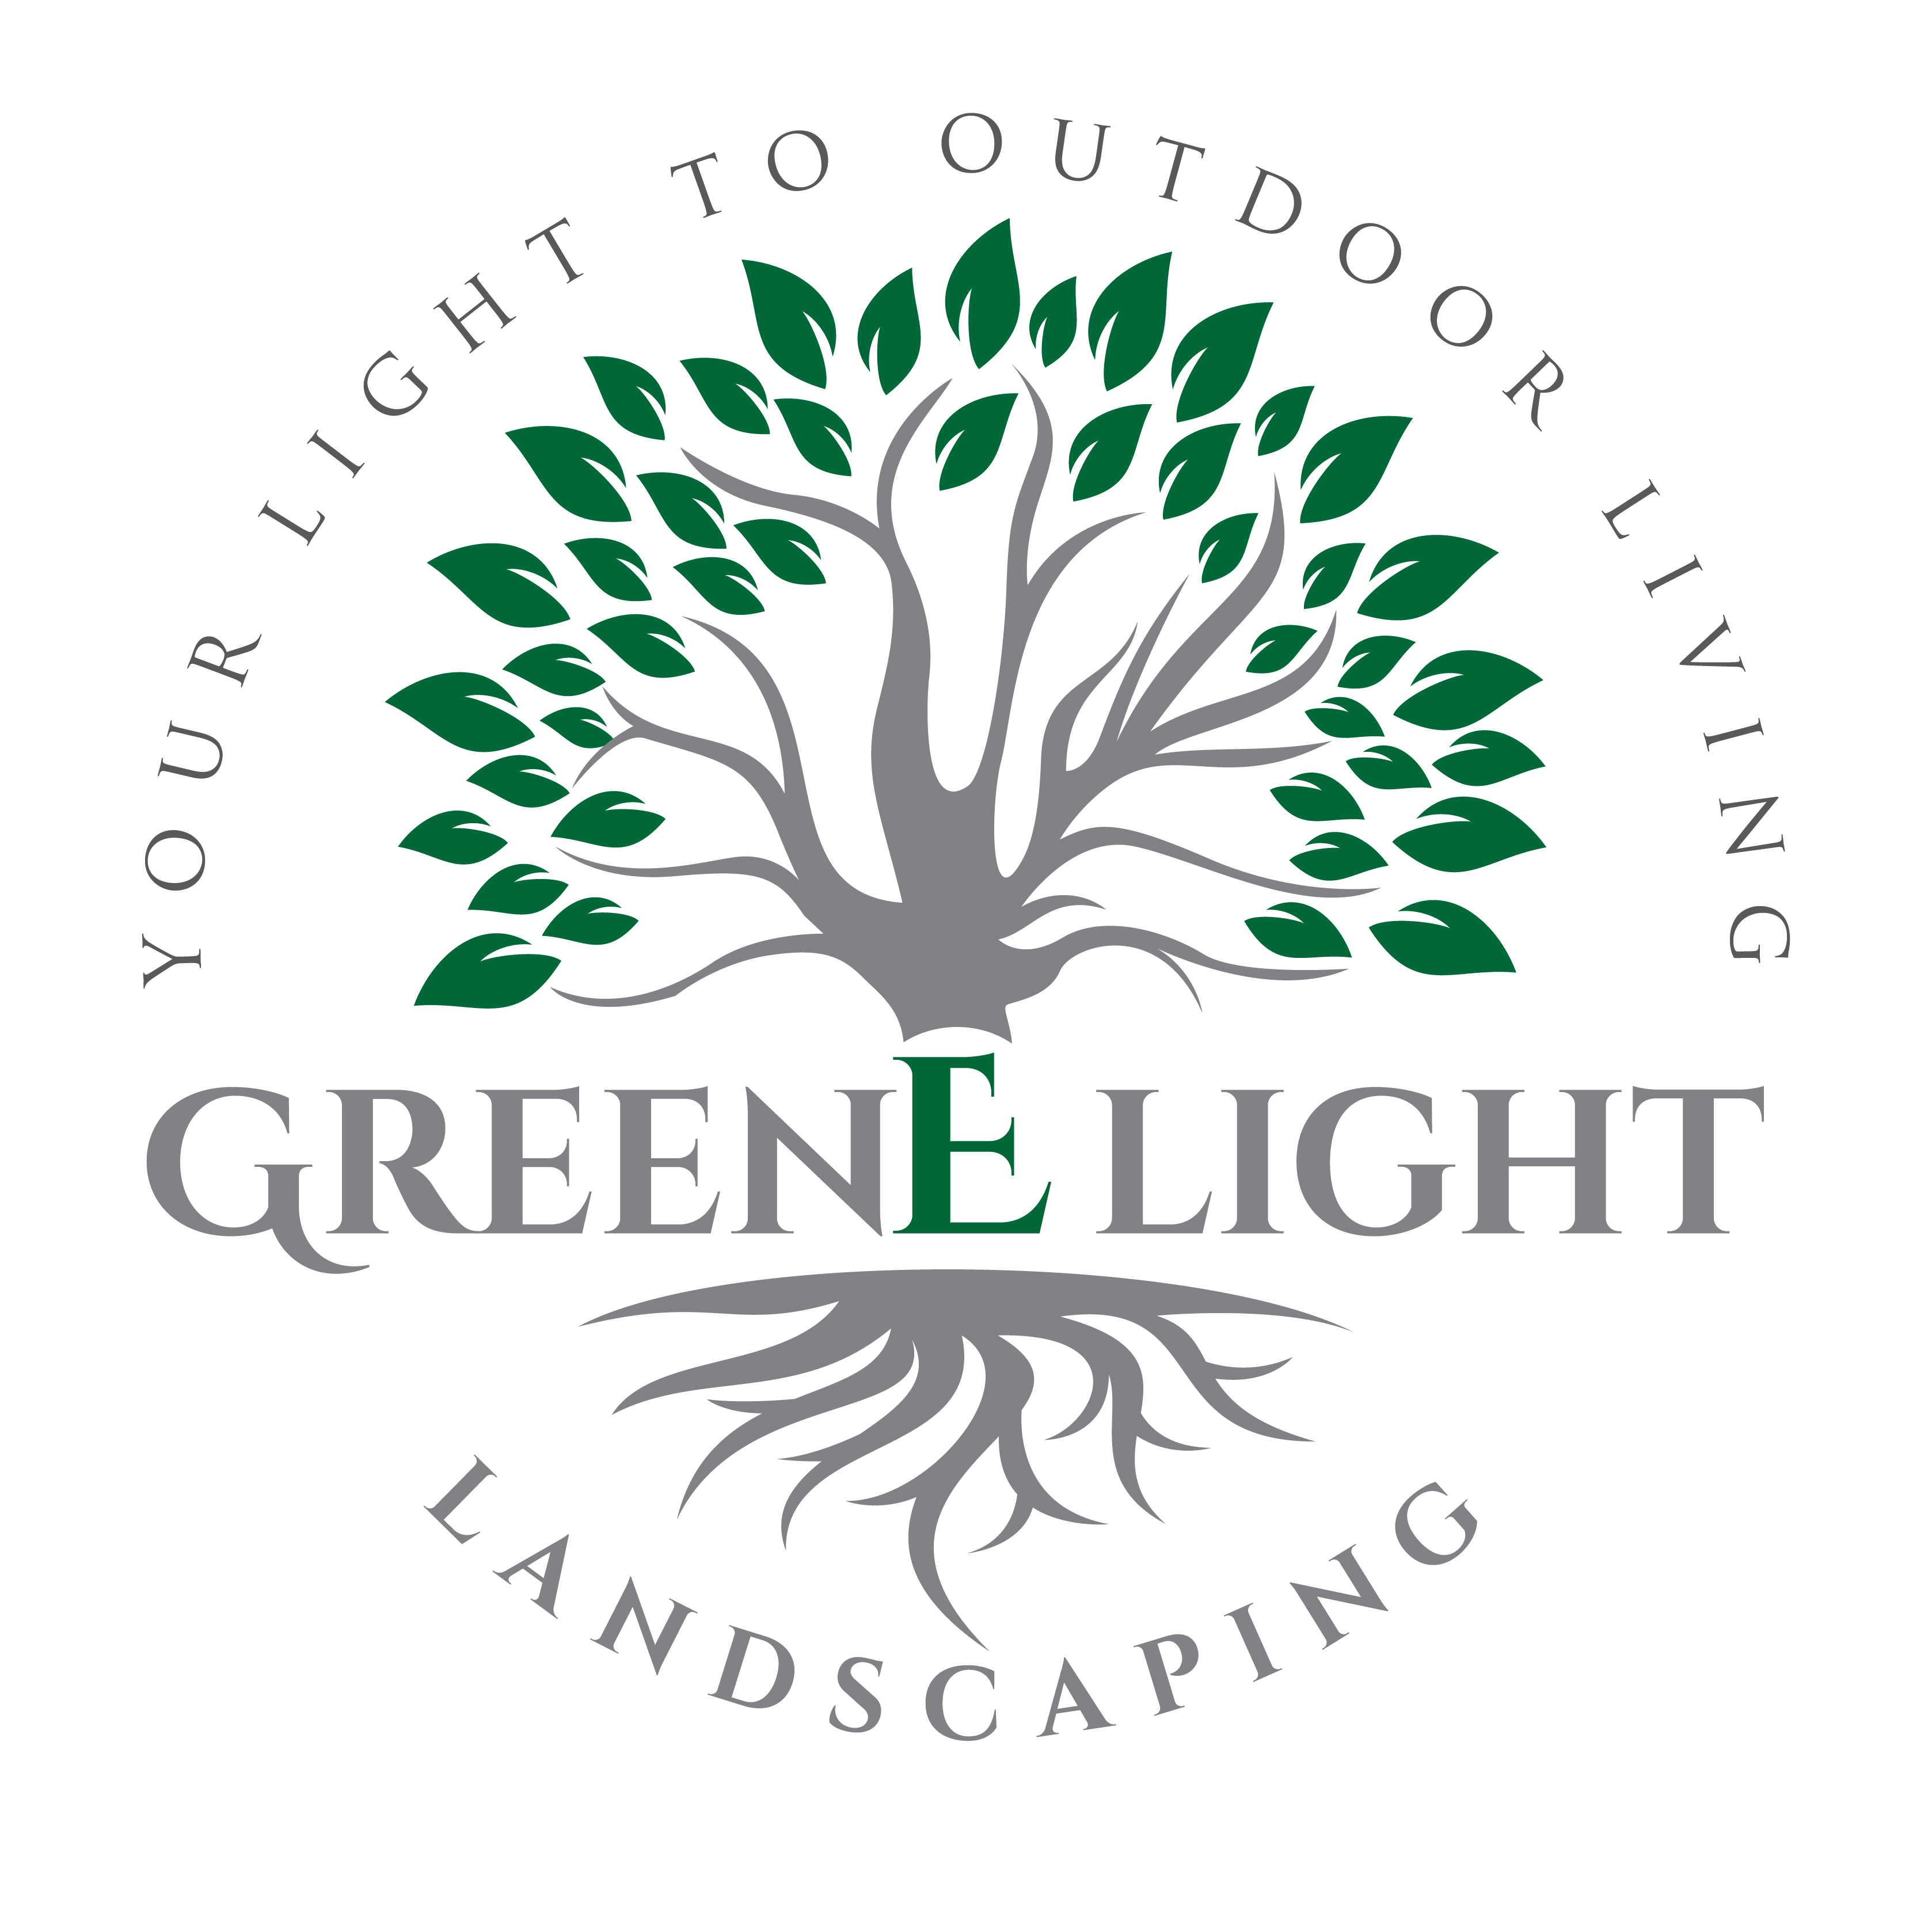 Greene light landscaping